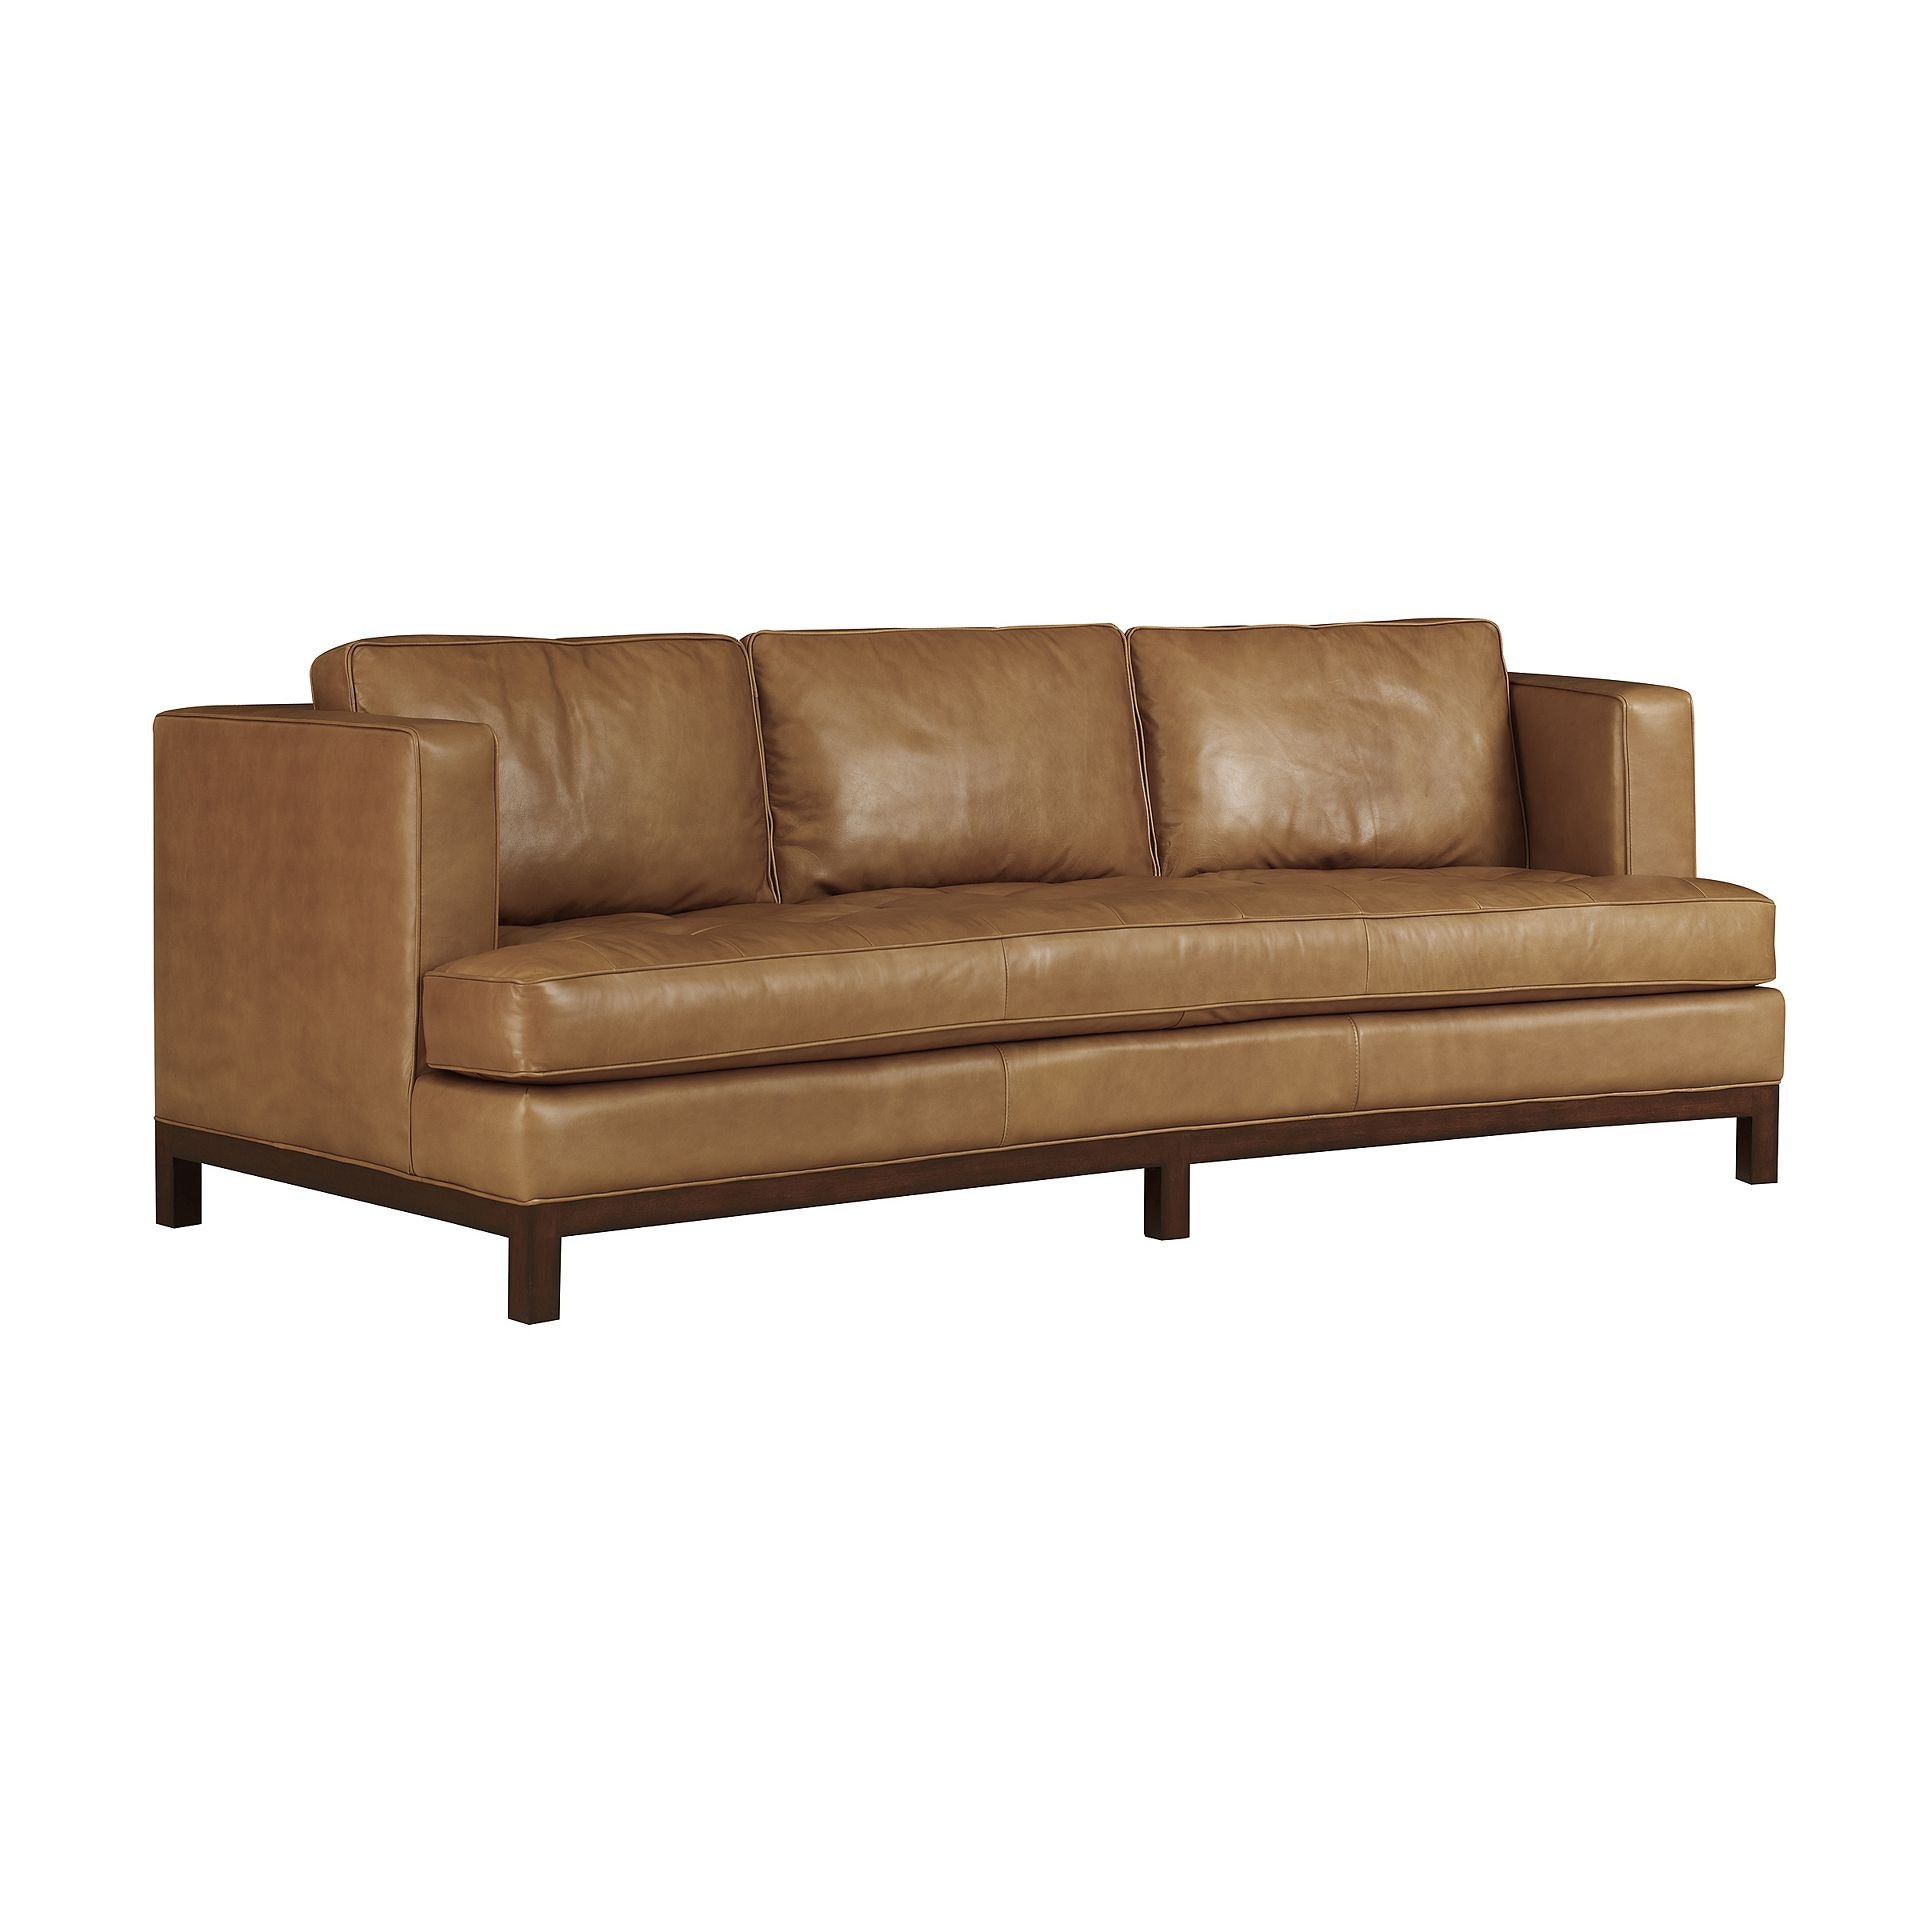 Henredon Furniture Henredon Leather Company Crescent Sofa IL8834 C